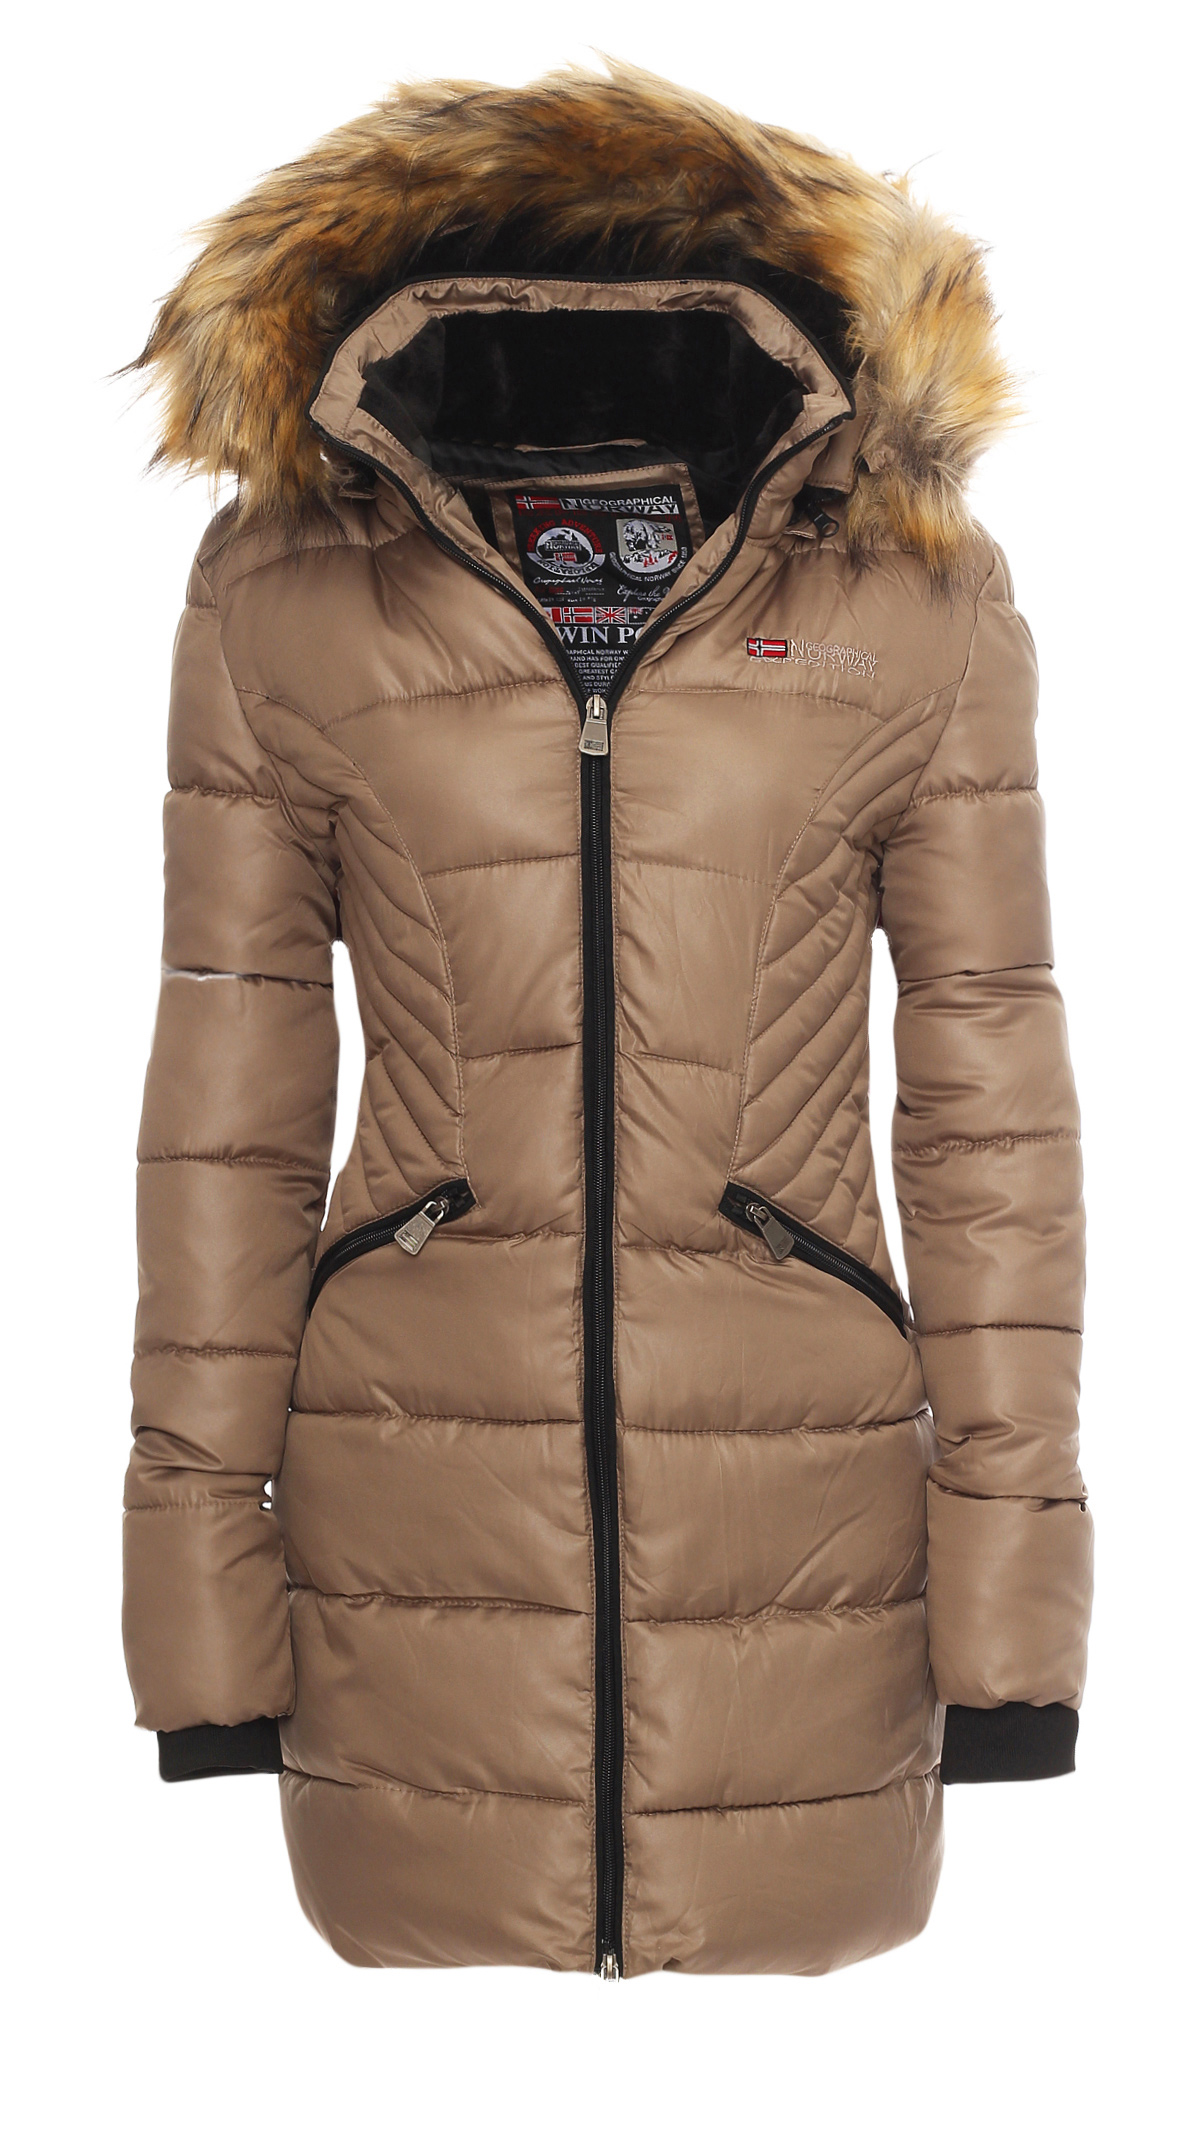 Geographical Norway Ladies Winter Jacket Parka Long Coat